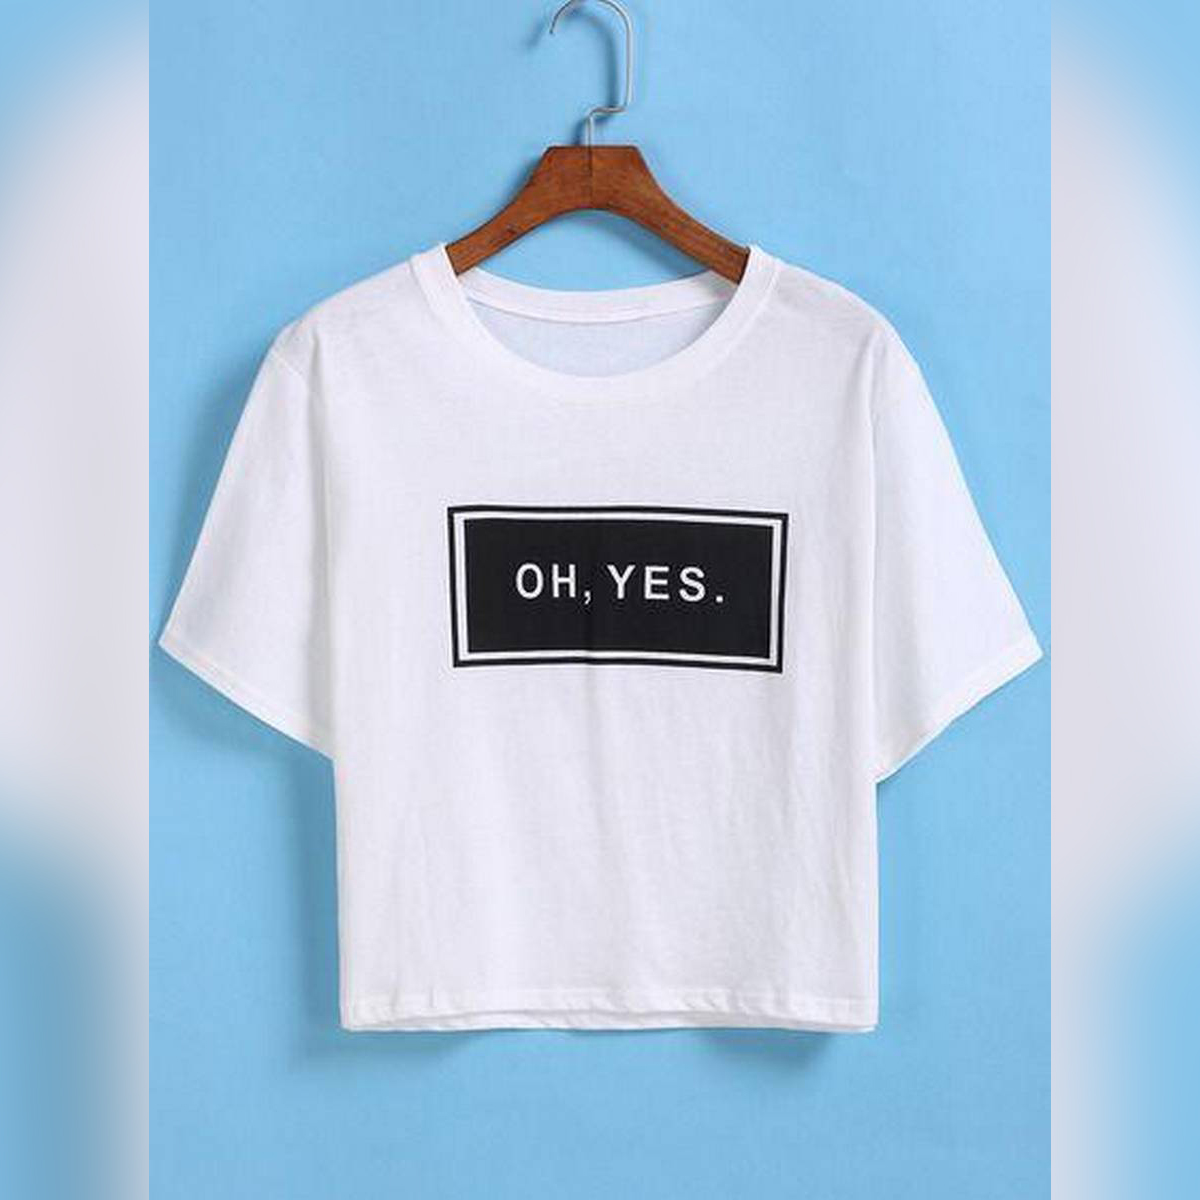 OH,YES white crop tshirt for women's